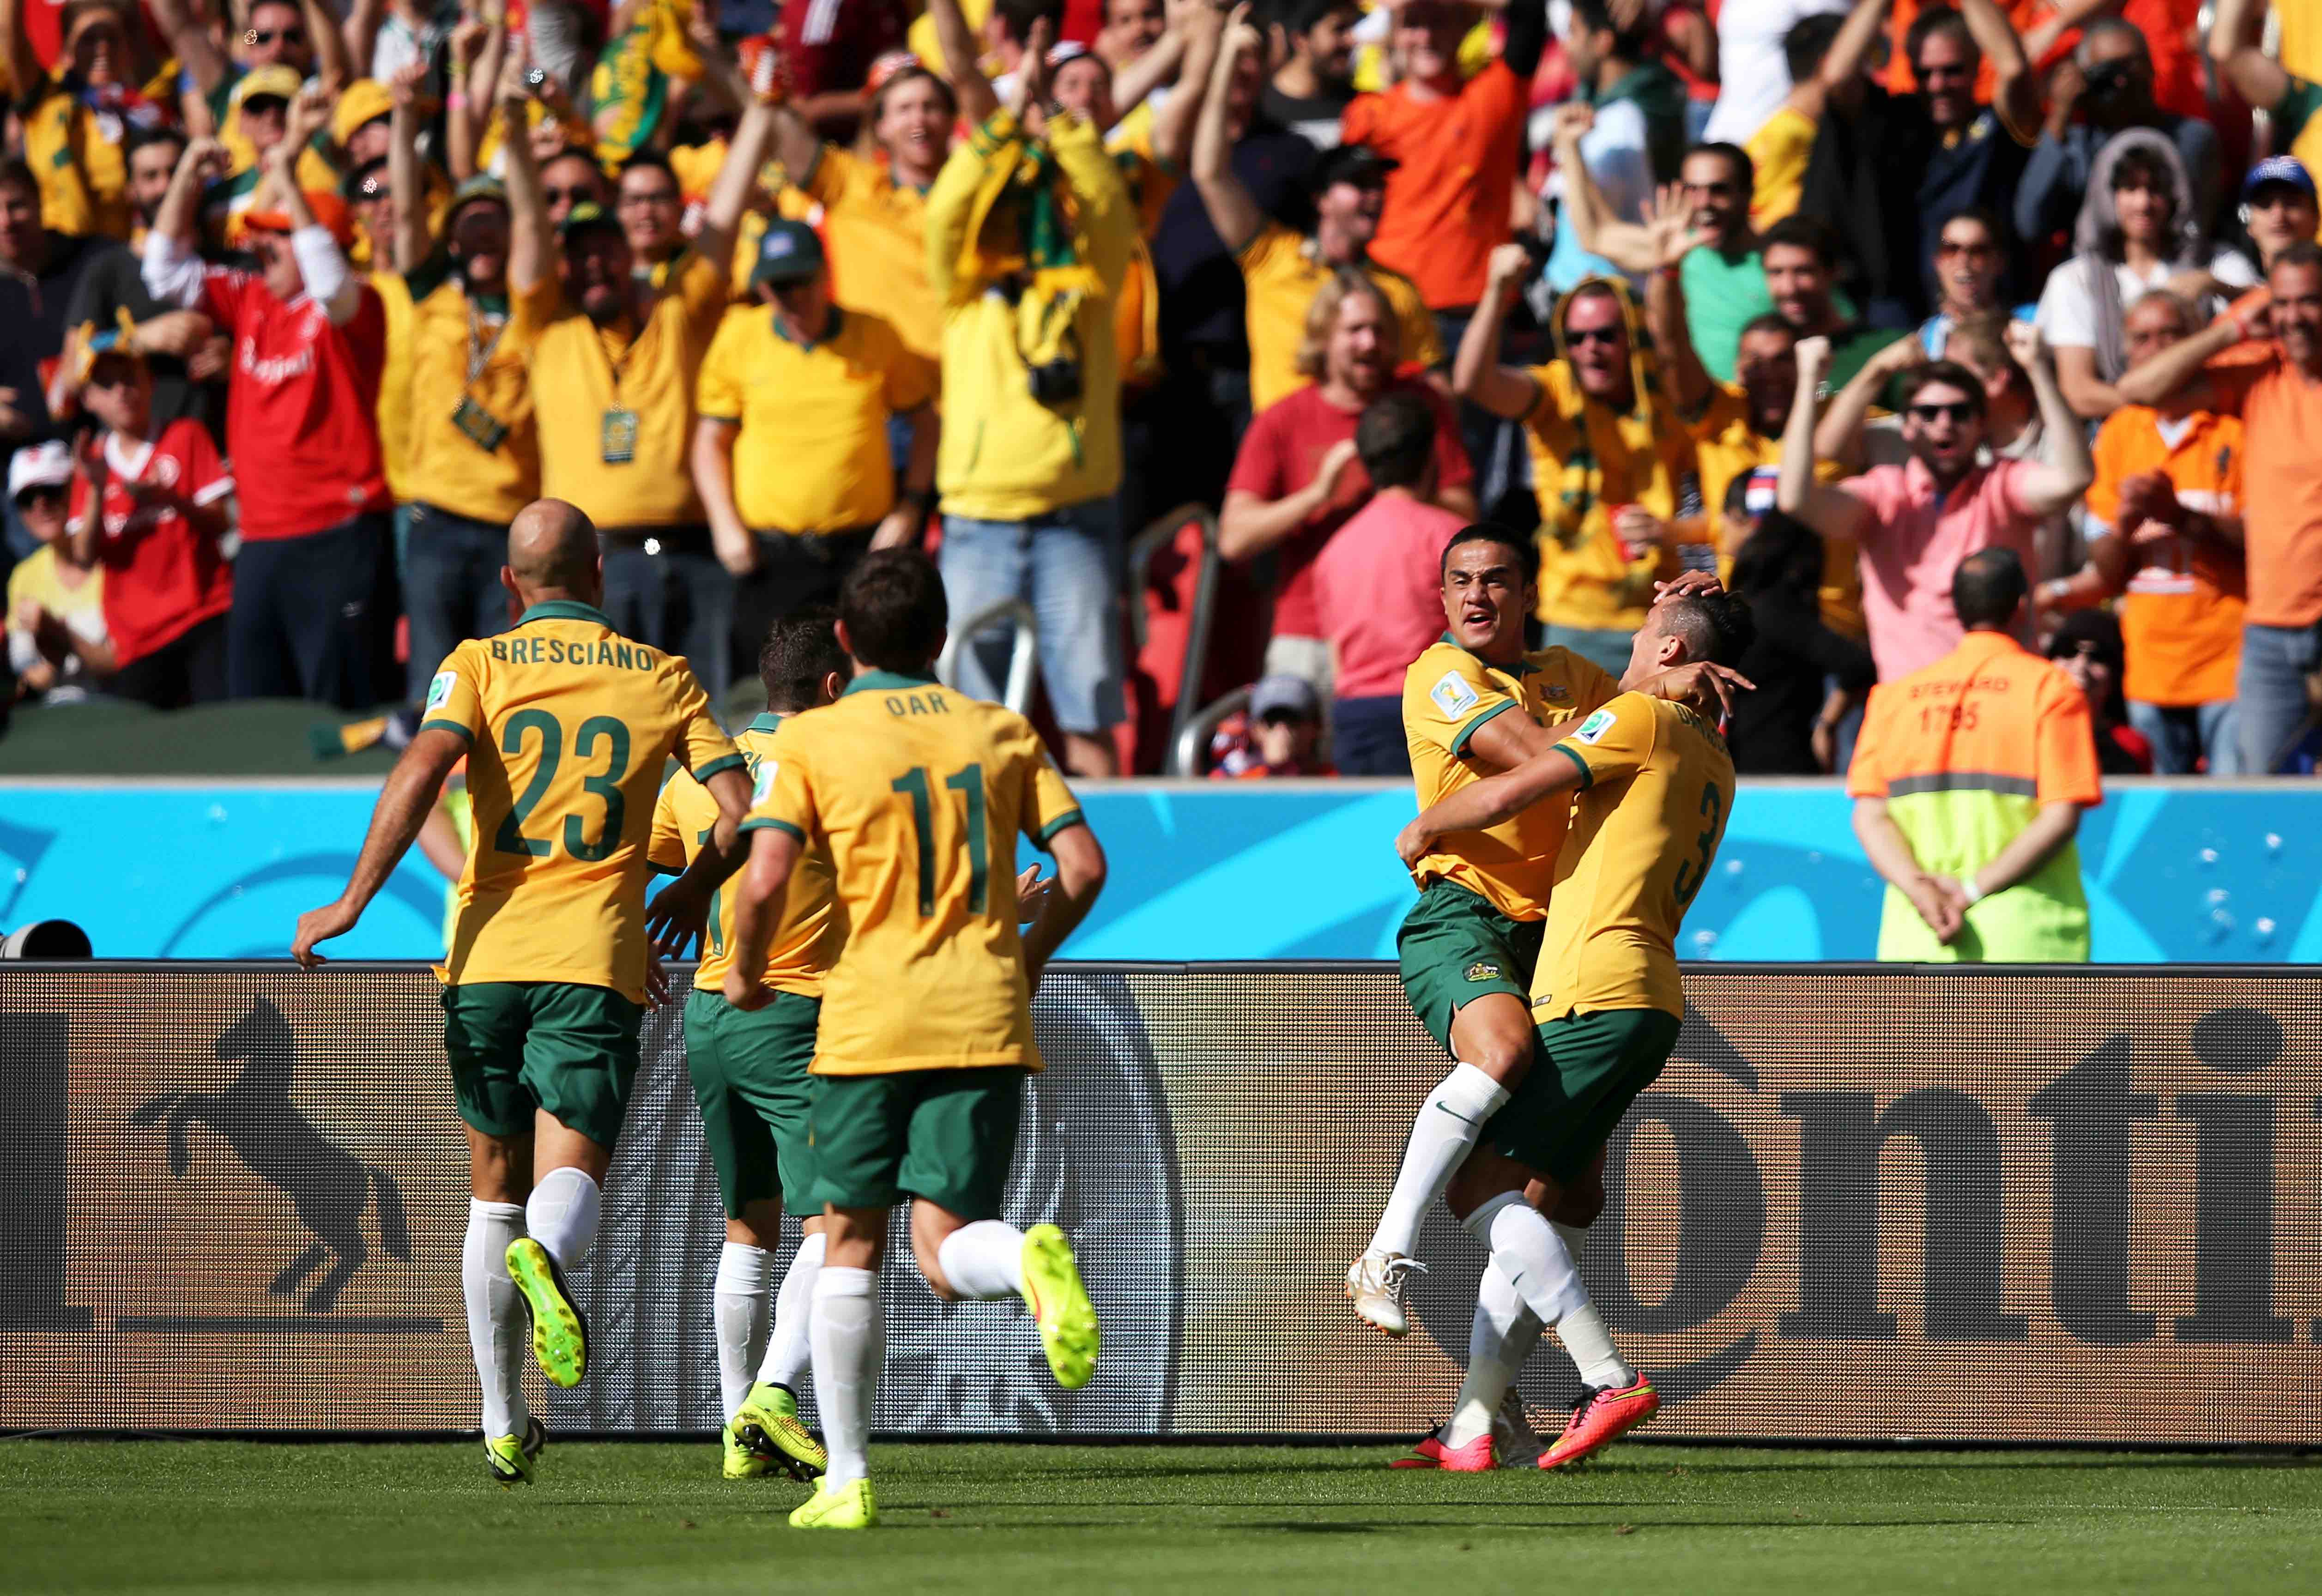 Cahill celebrating his famous goal against the Netherlands at the 2014 FIFA World Cup